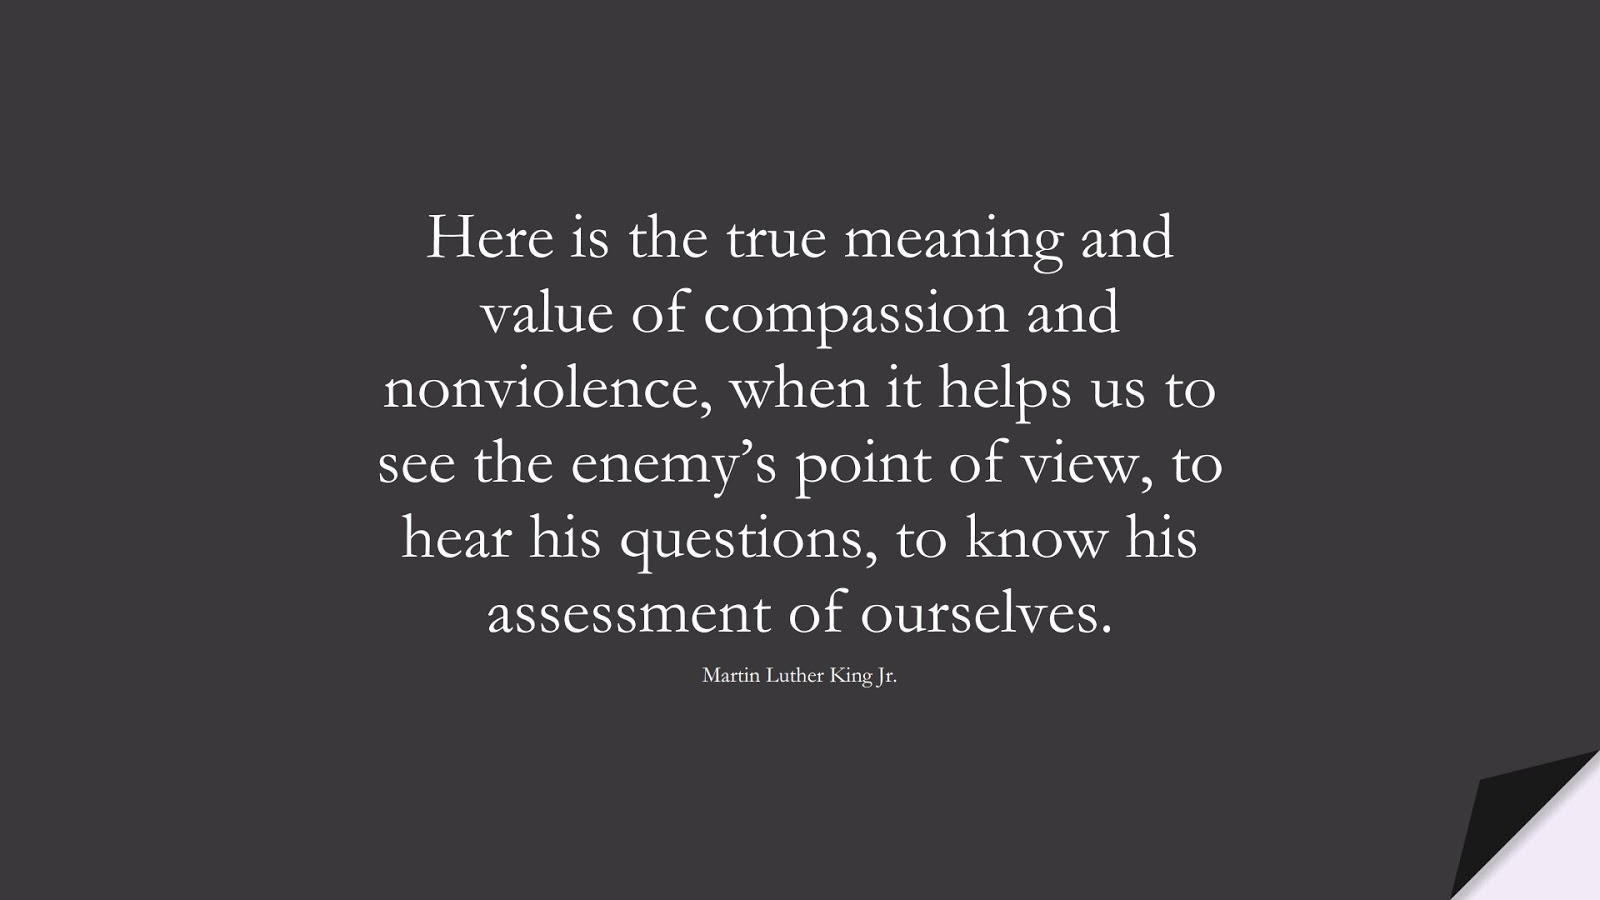 Here is the true meaning and value of compassion and nonviolence, when it helps us to see the enemy's point of view, to hear his questions, to know his assessment of ourselves. (Martin Luther King Jr.);  #MartinLutherKingJrQuotes